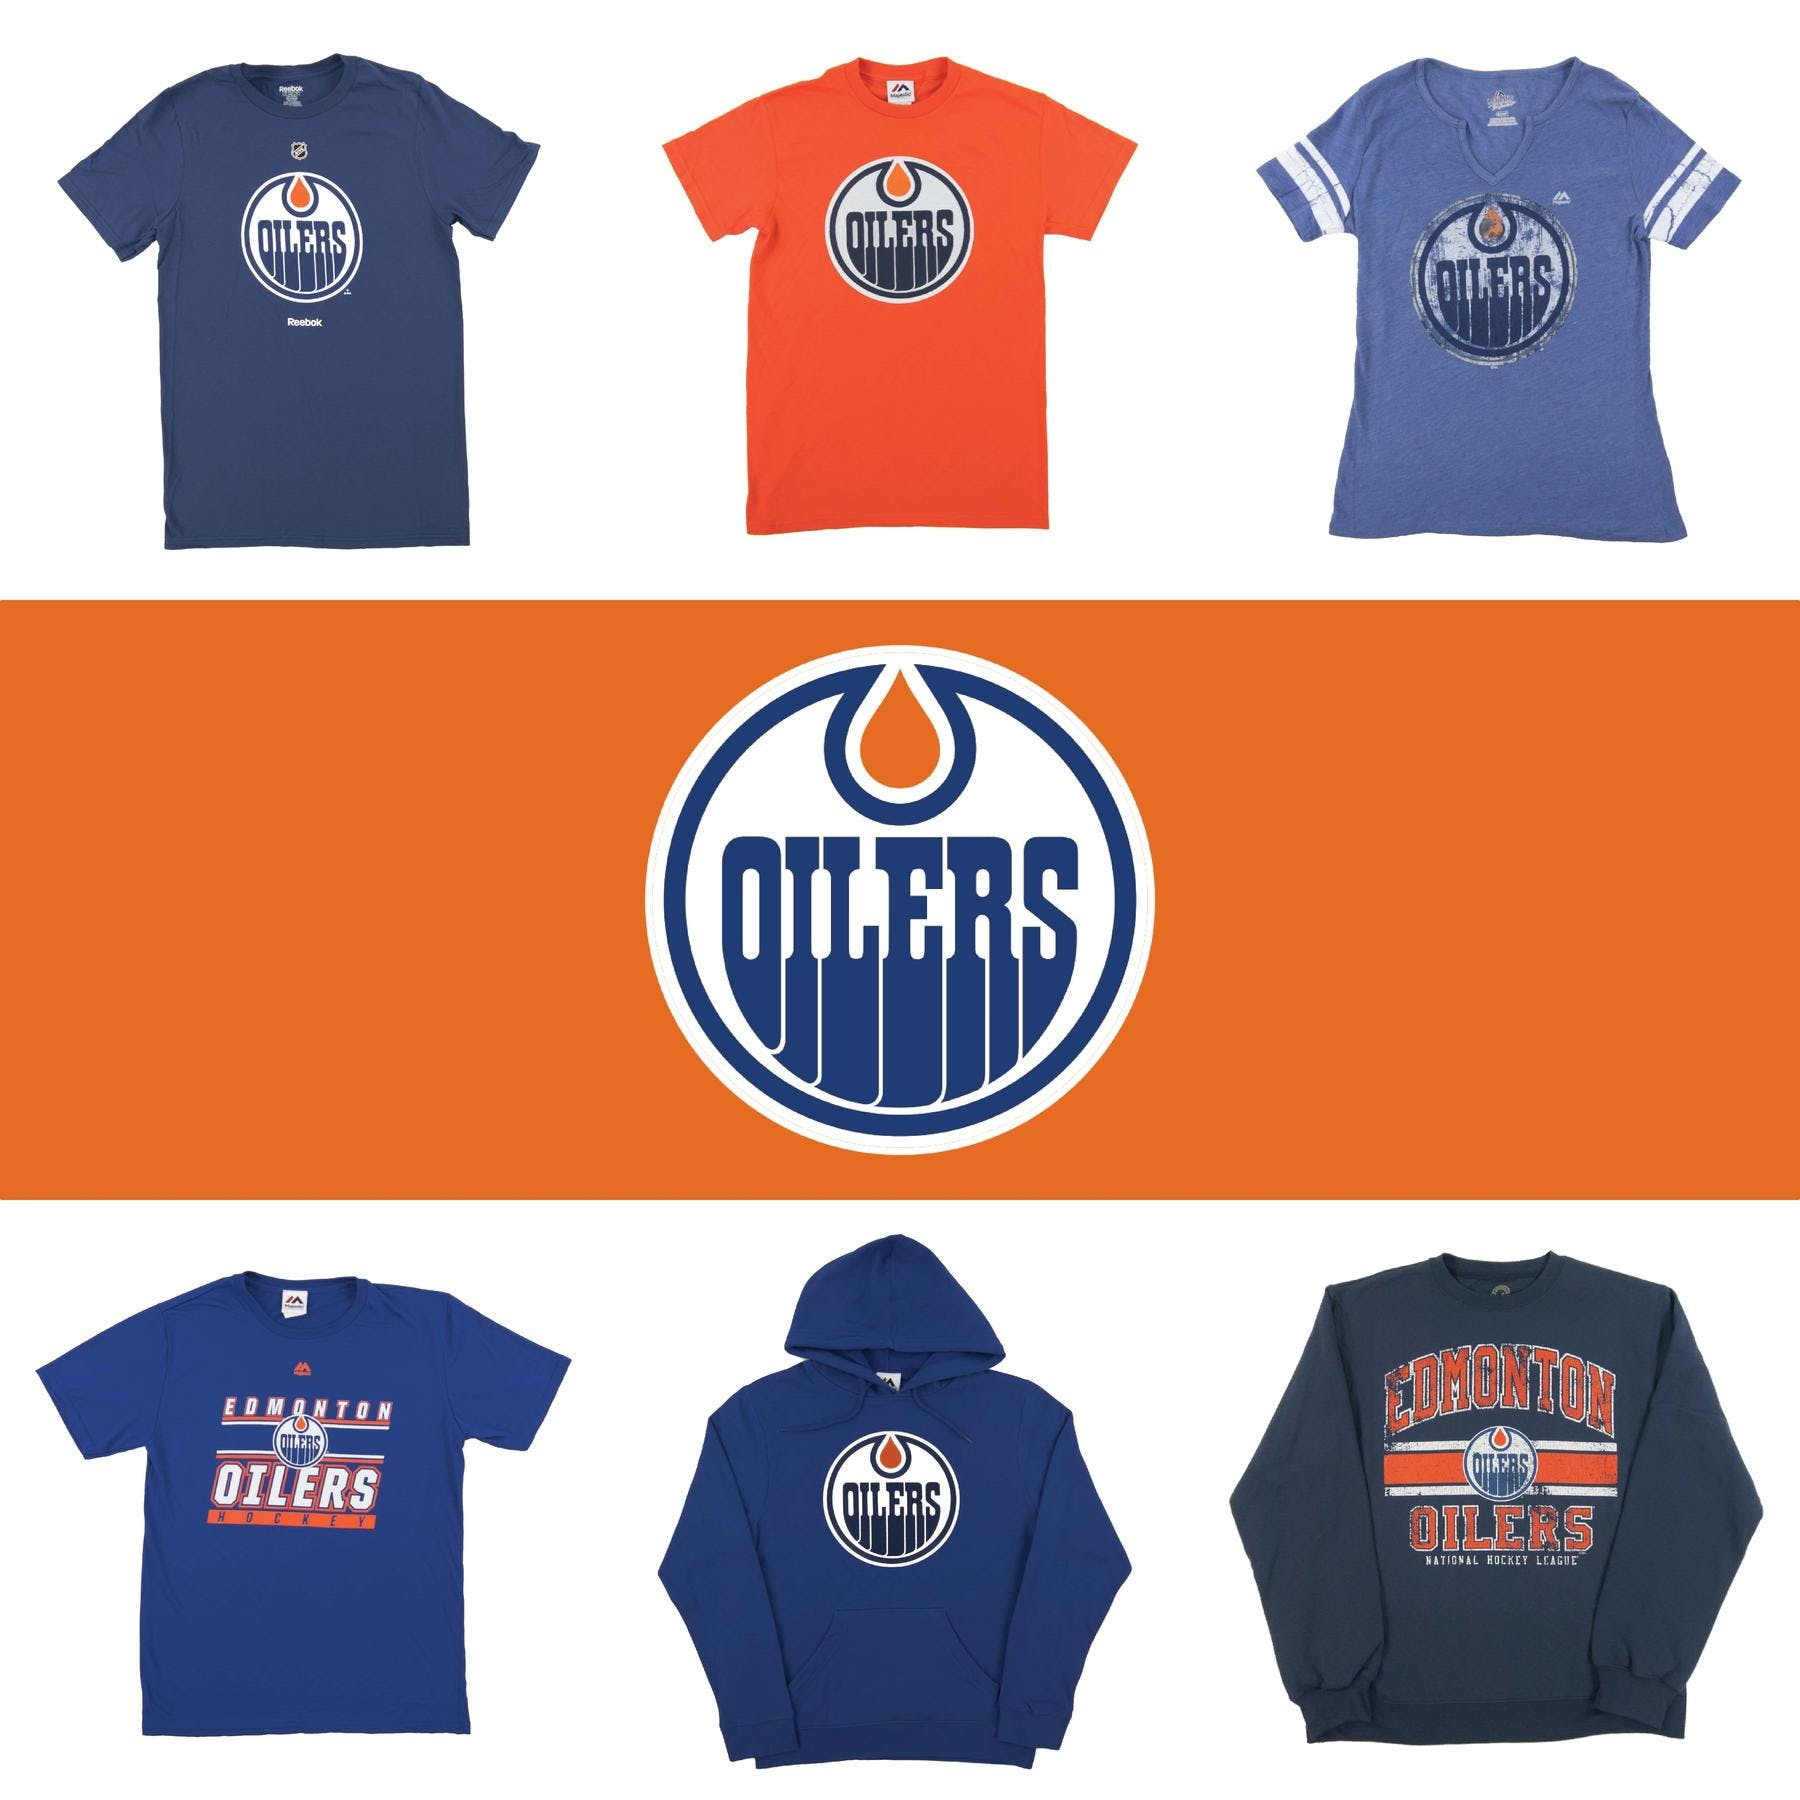 Edmonton Oilers Officially Licensed Nhl Apparel Liquidation 630